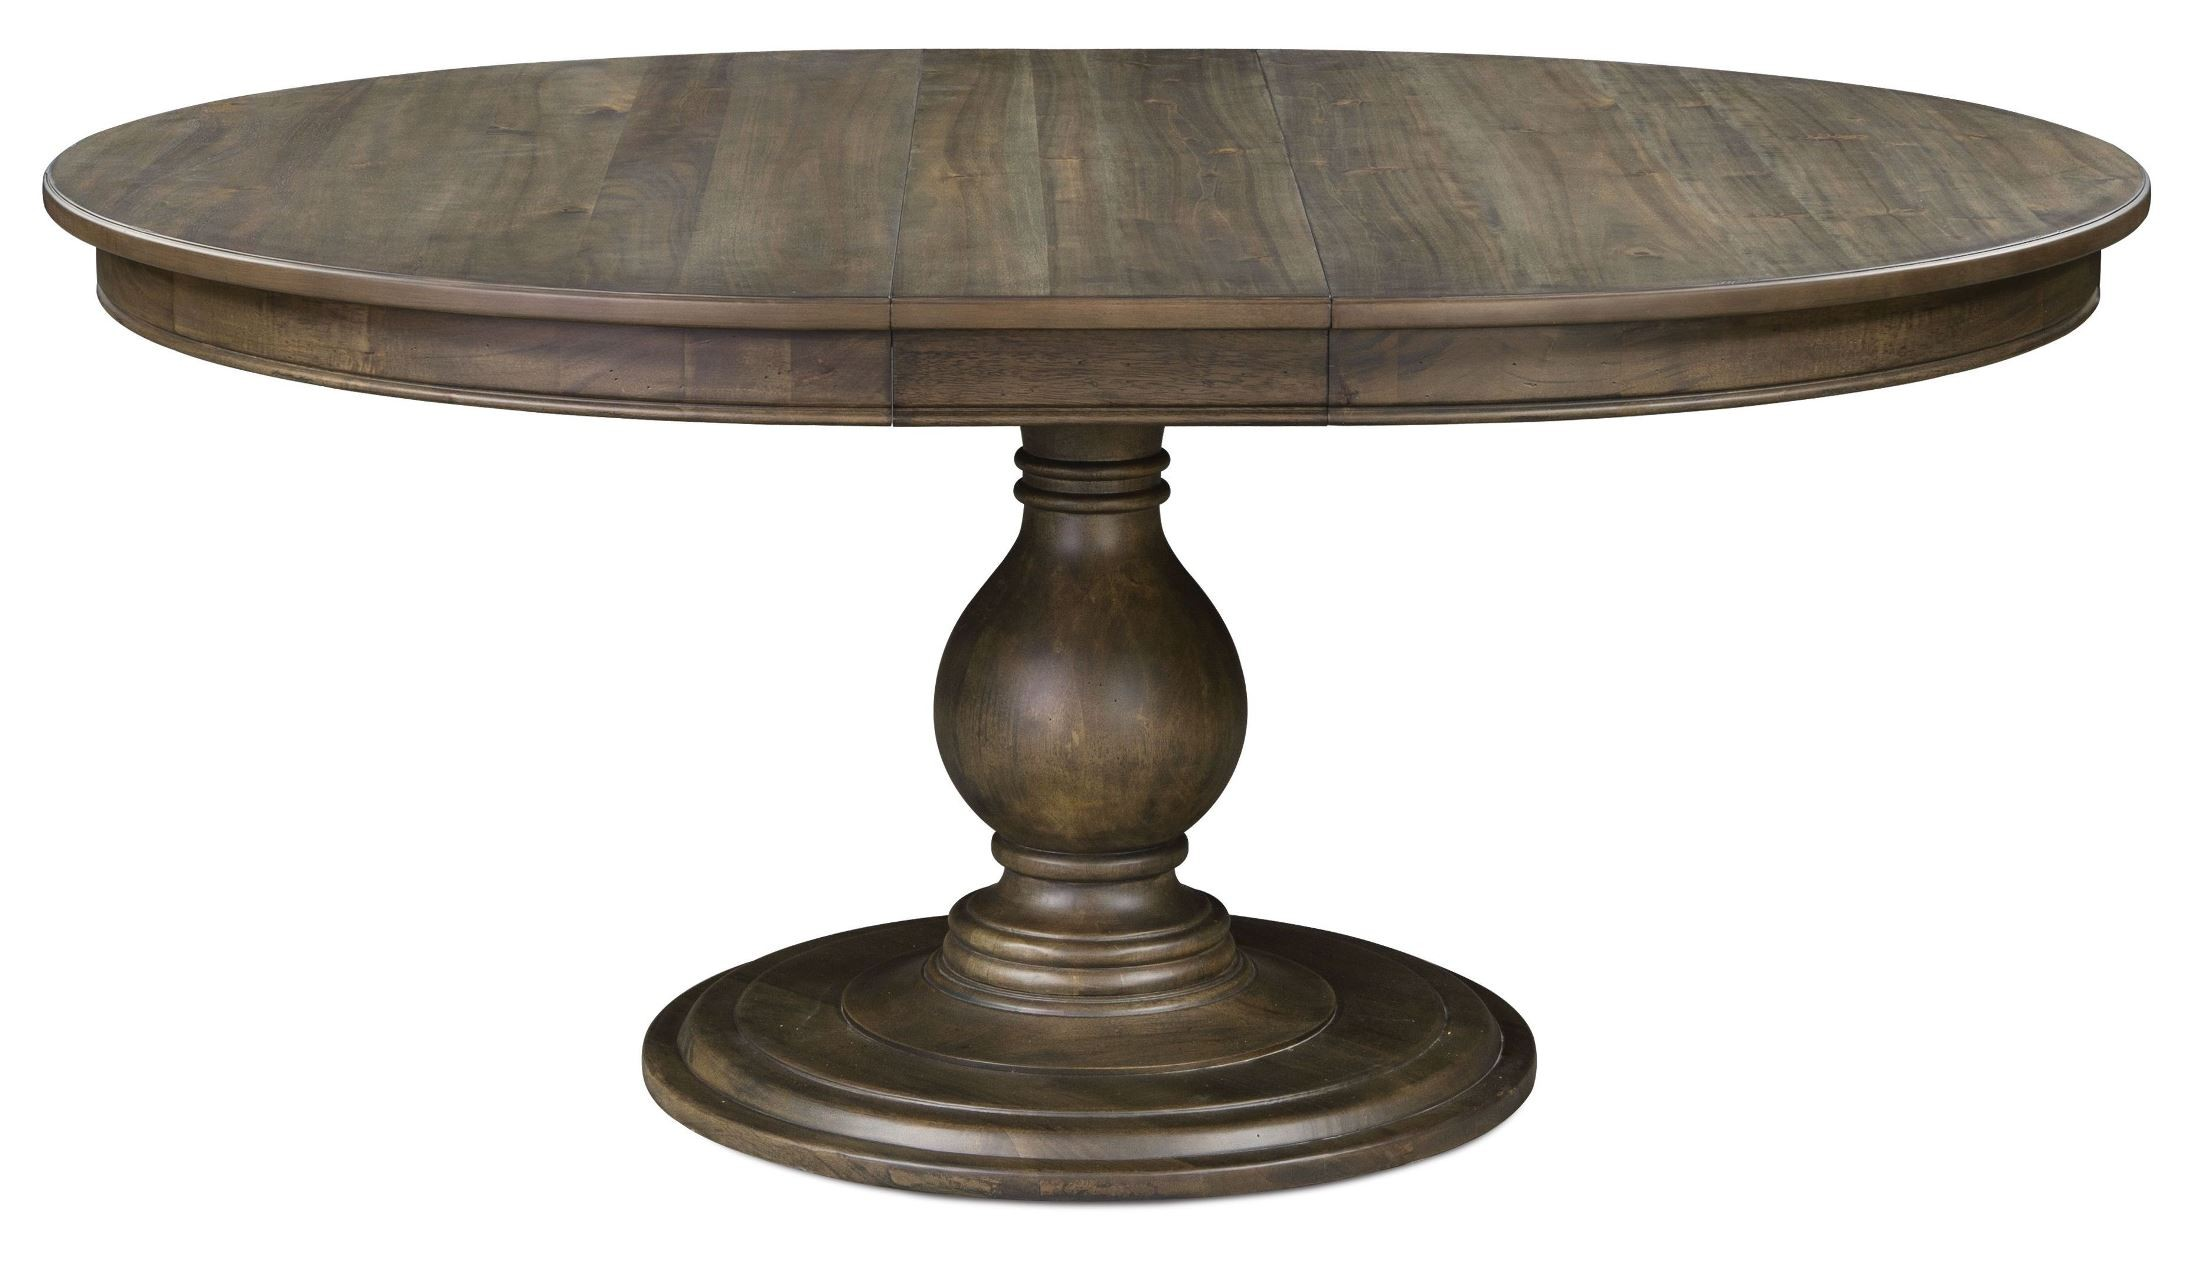 karlin large round dining table d2471 22t 22b magnussen